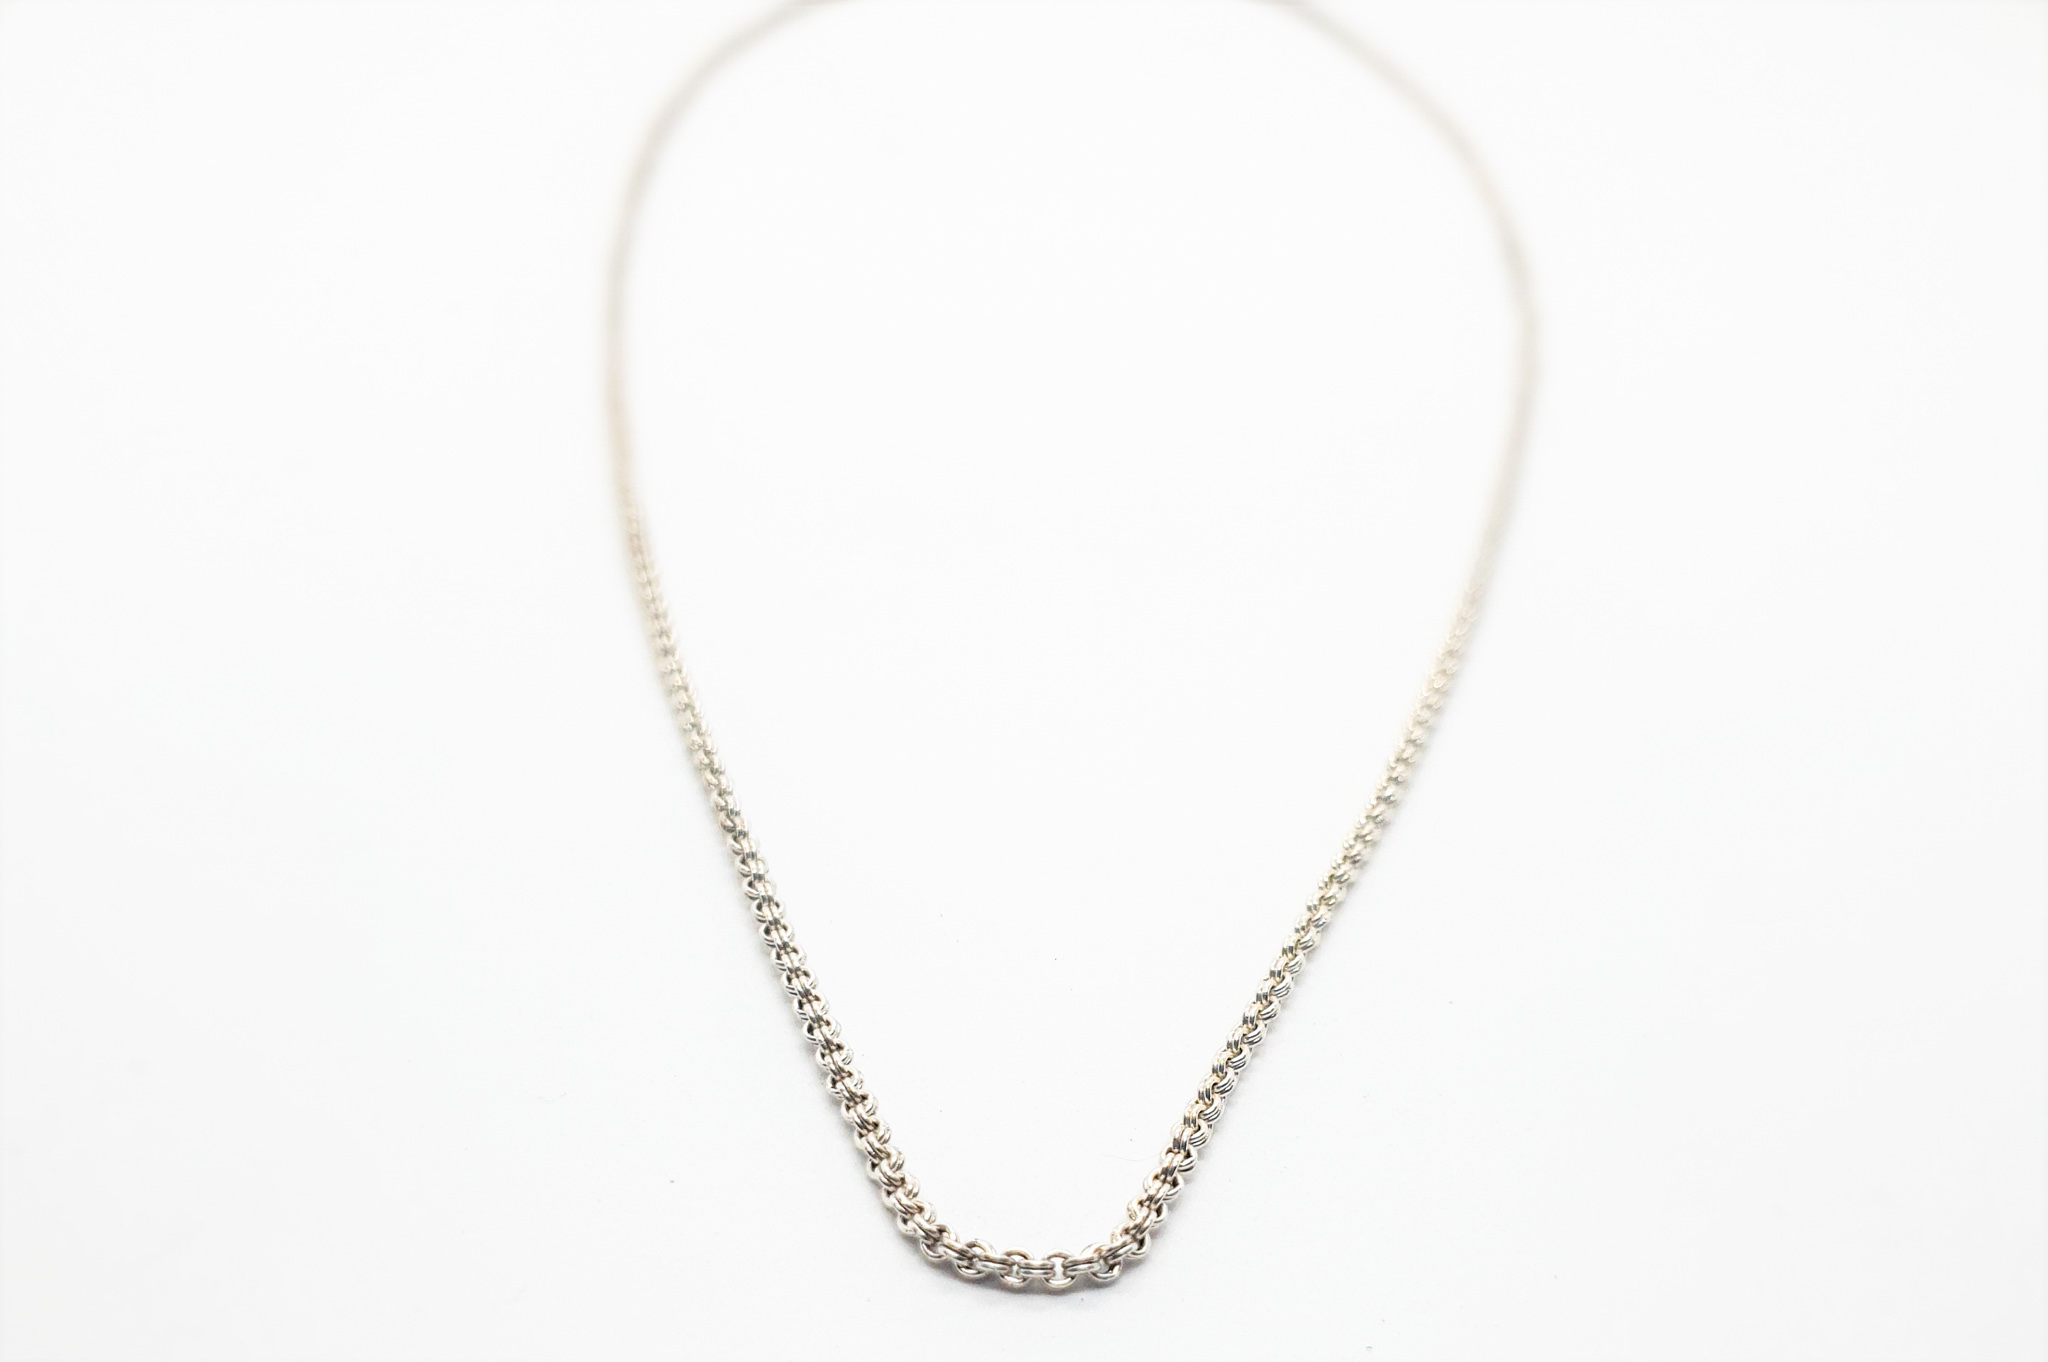 Photo silver necklace 1